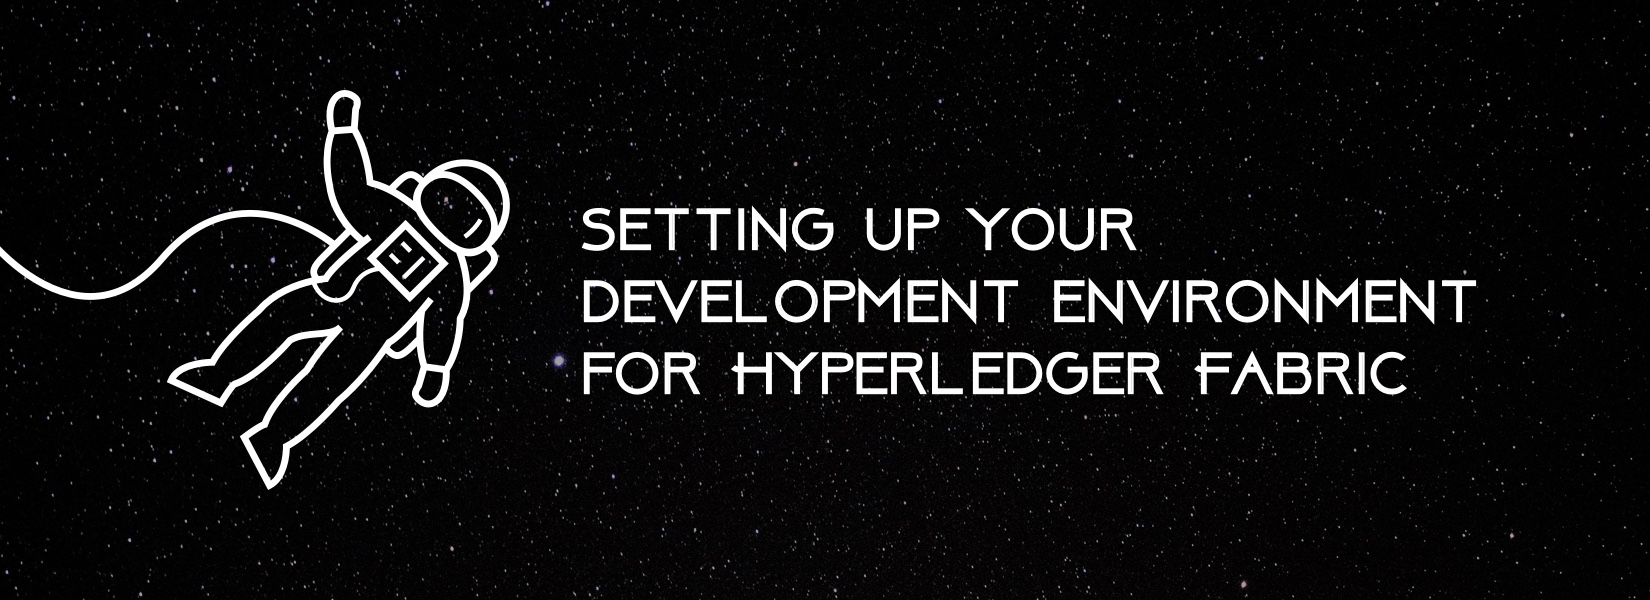 Setting up your development environment for Hyperledger Fabric